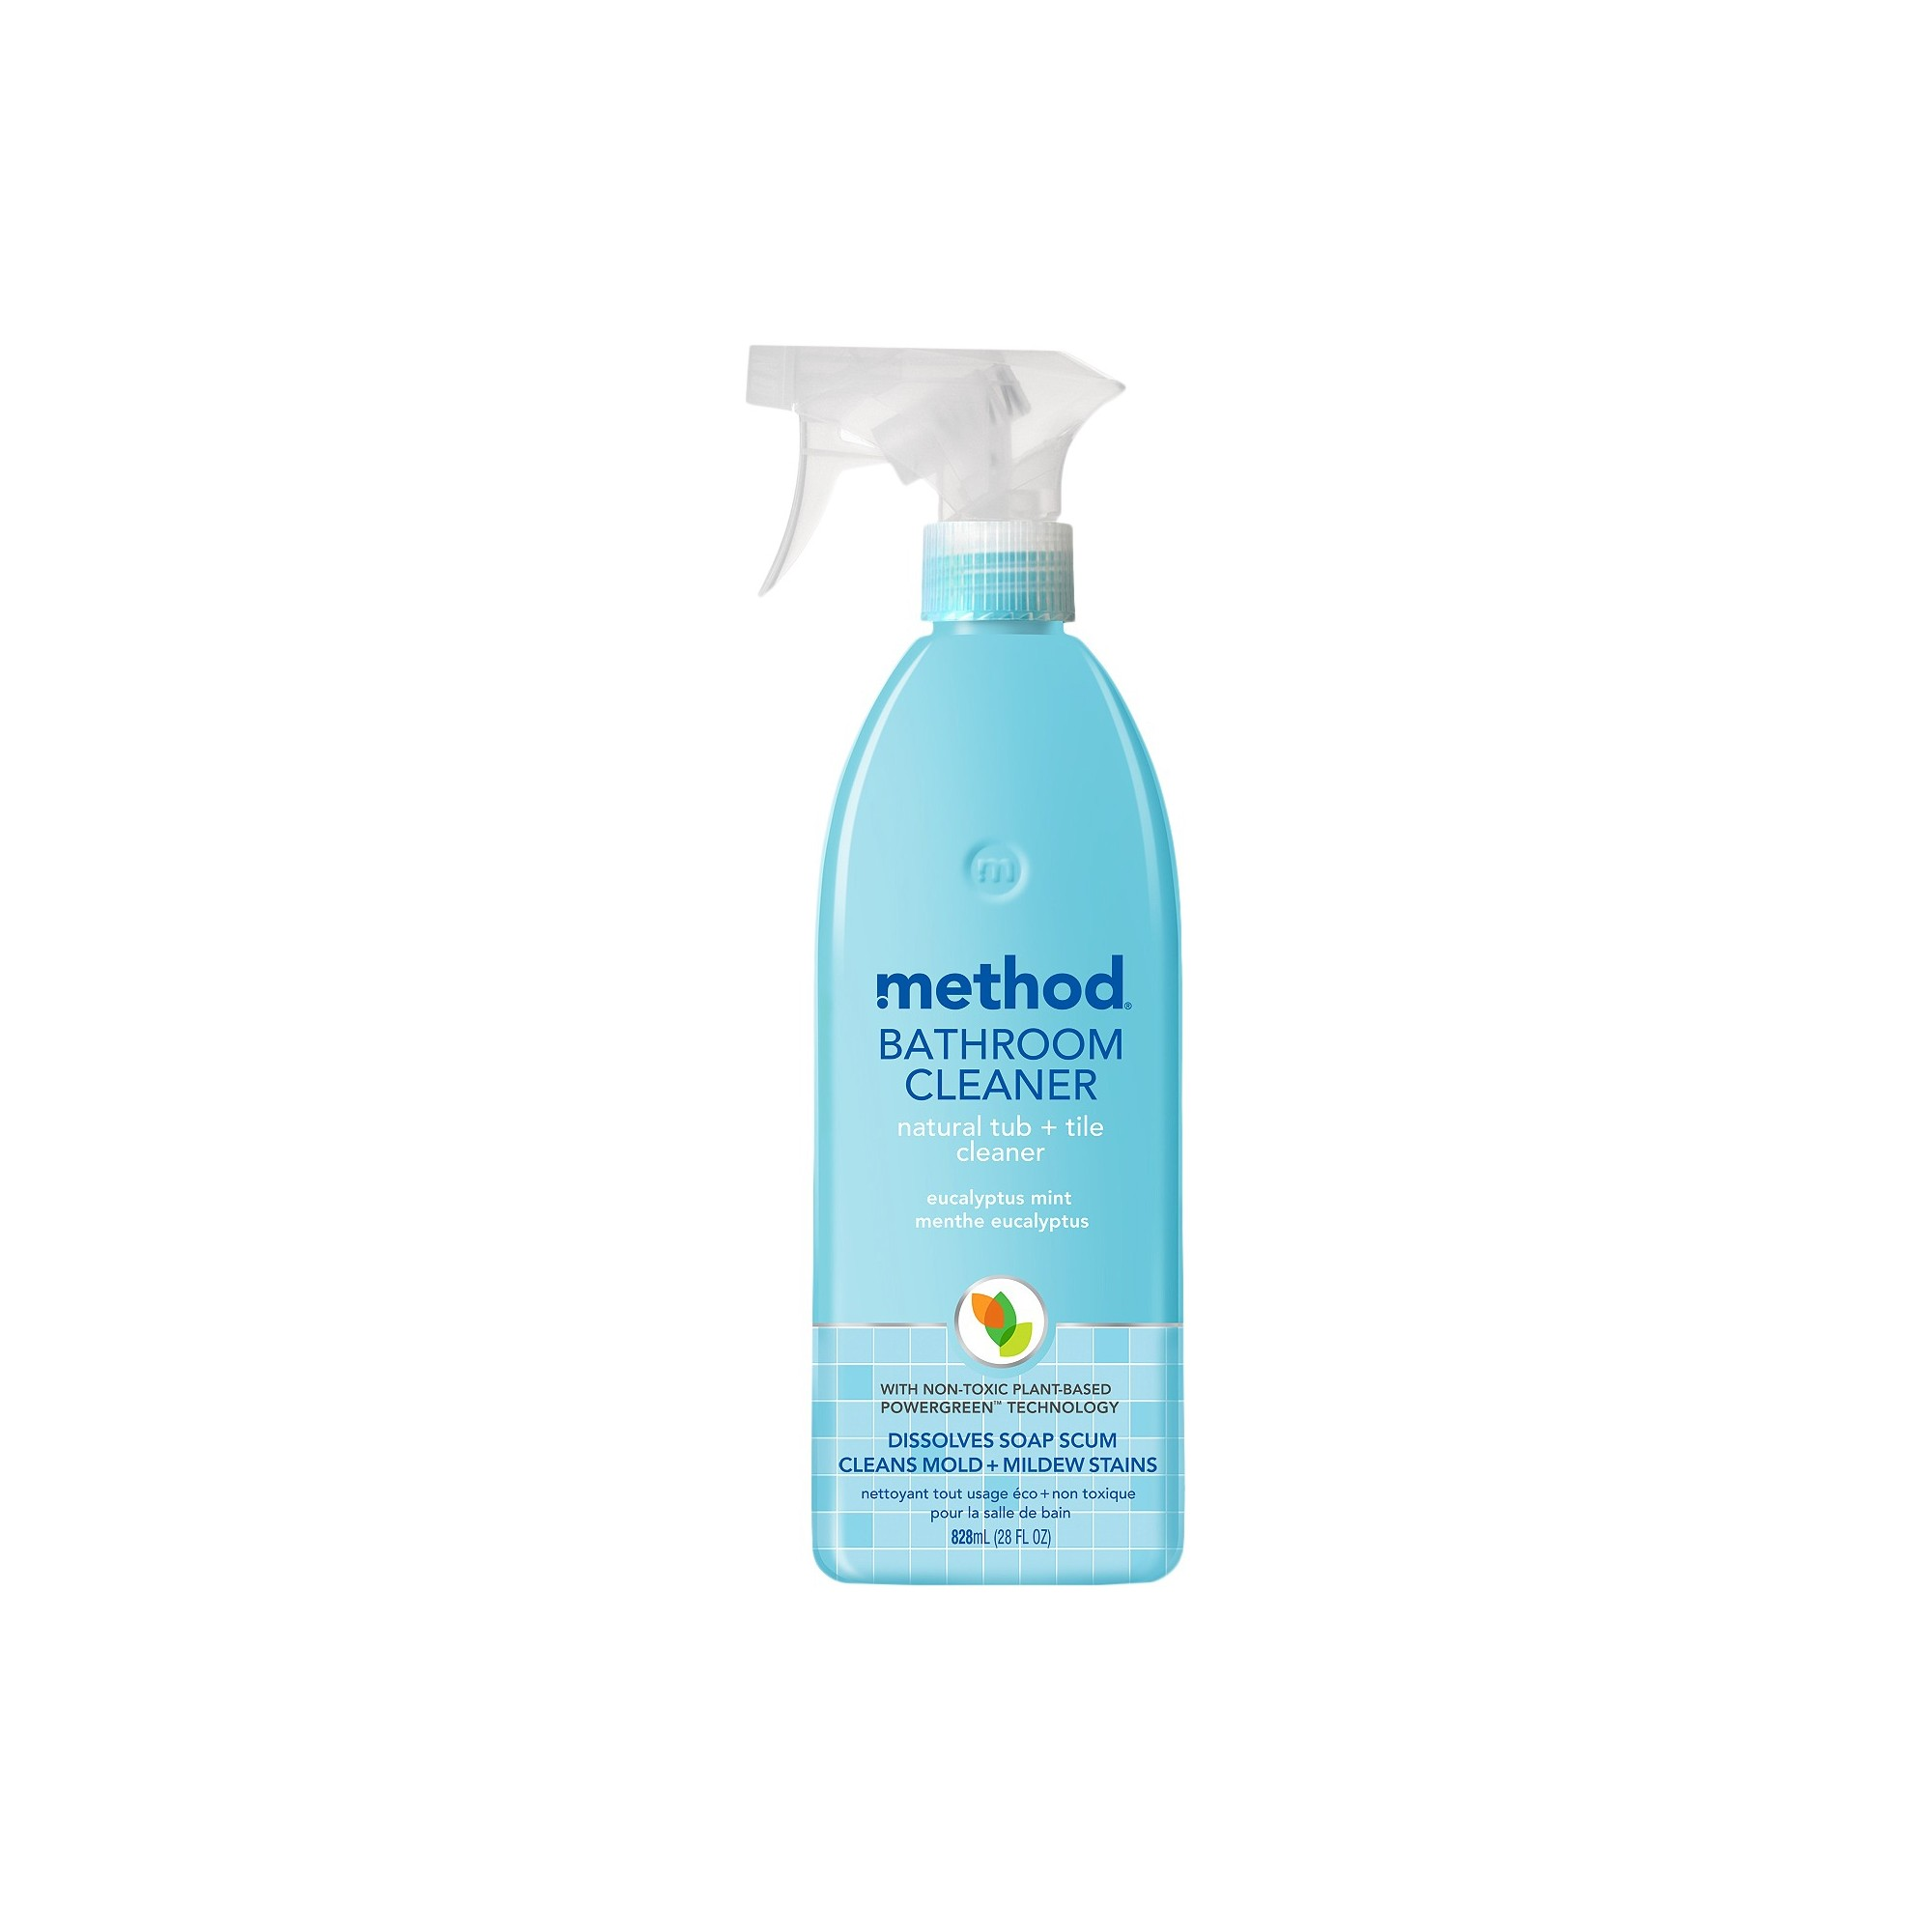 Method Cleaning Products Bathroom Cleaner Tub + Tile Eucalyptus Mint ...